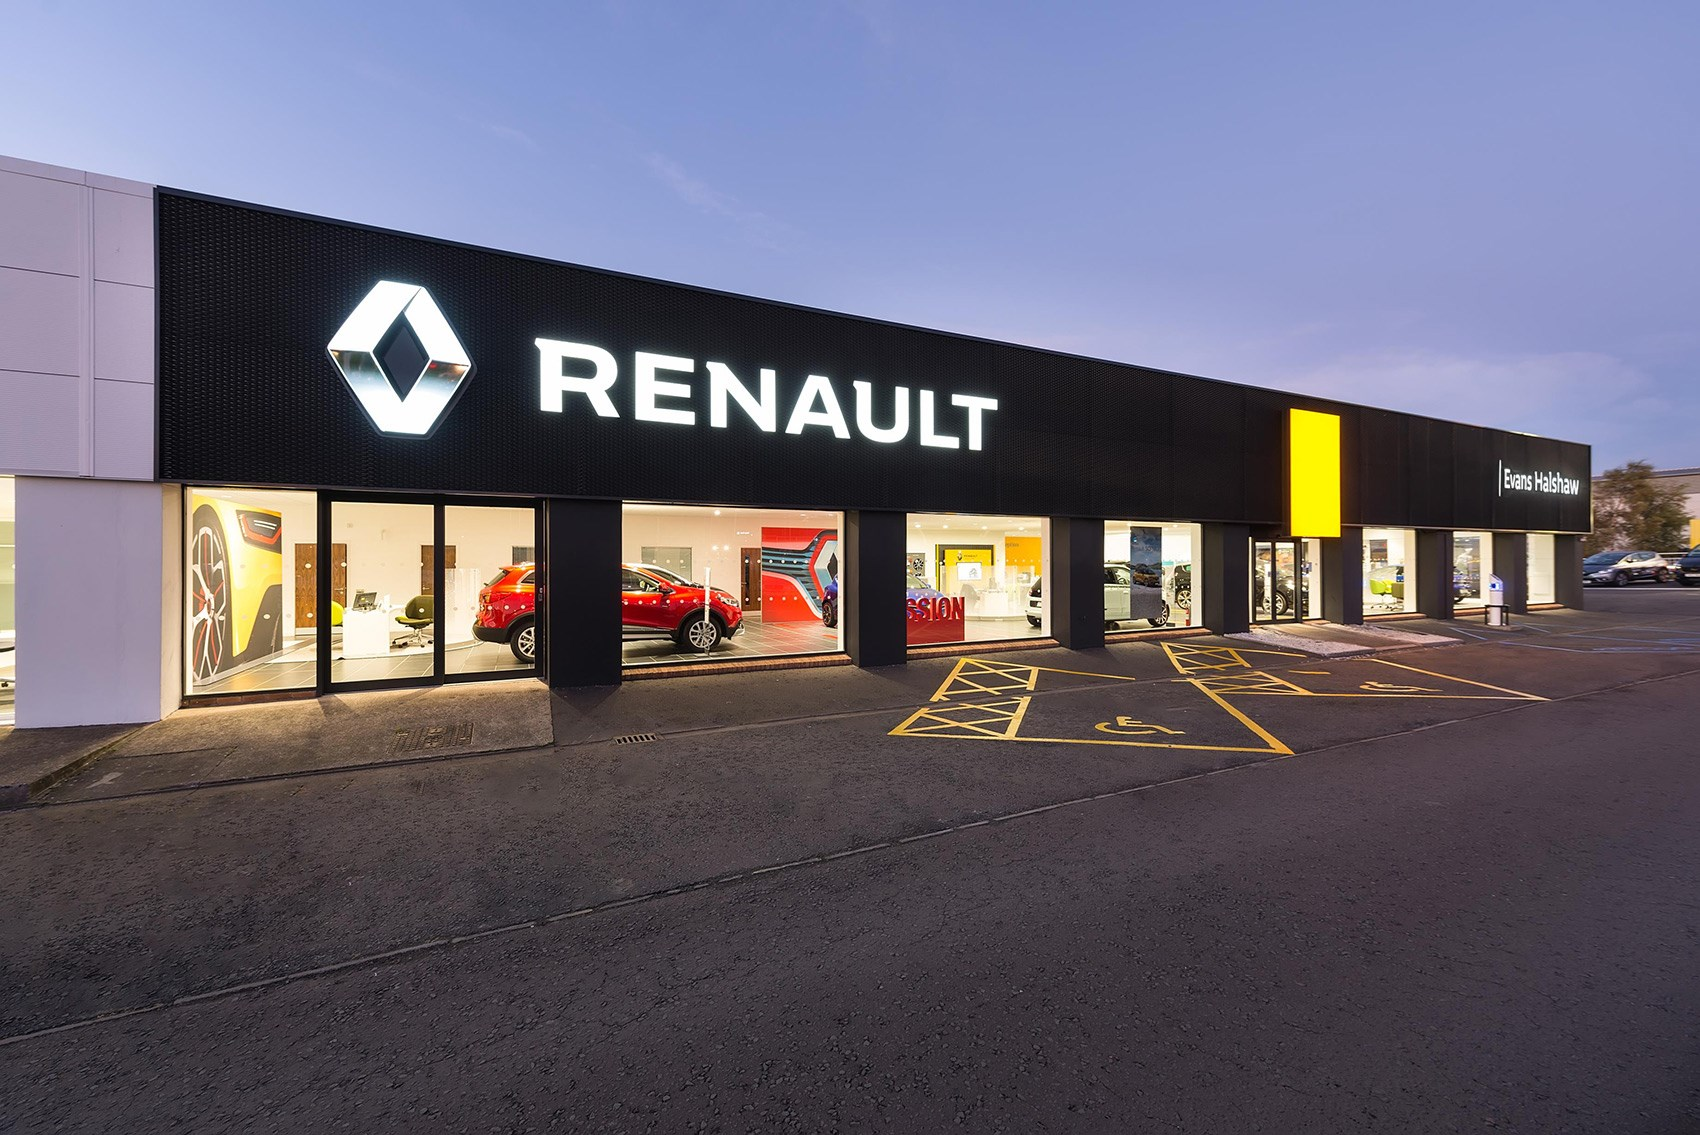 New 2018 Renault Store Dealerships